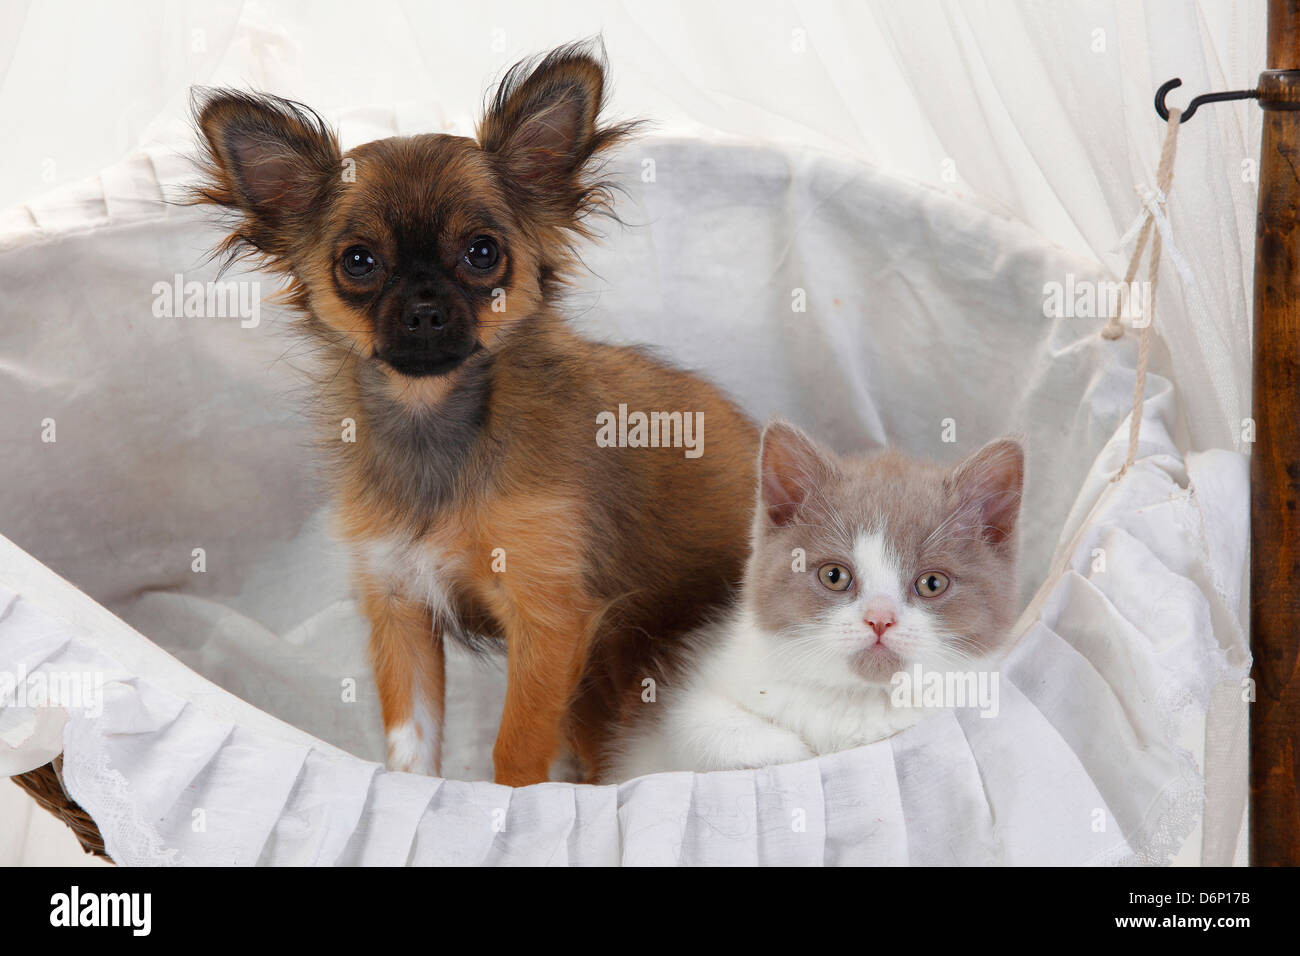 Chihuahua Puppy Longhaired 4 Months And British Longhair Cat